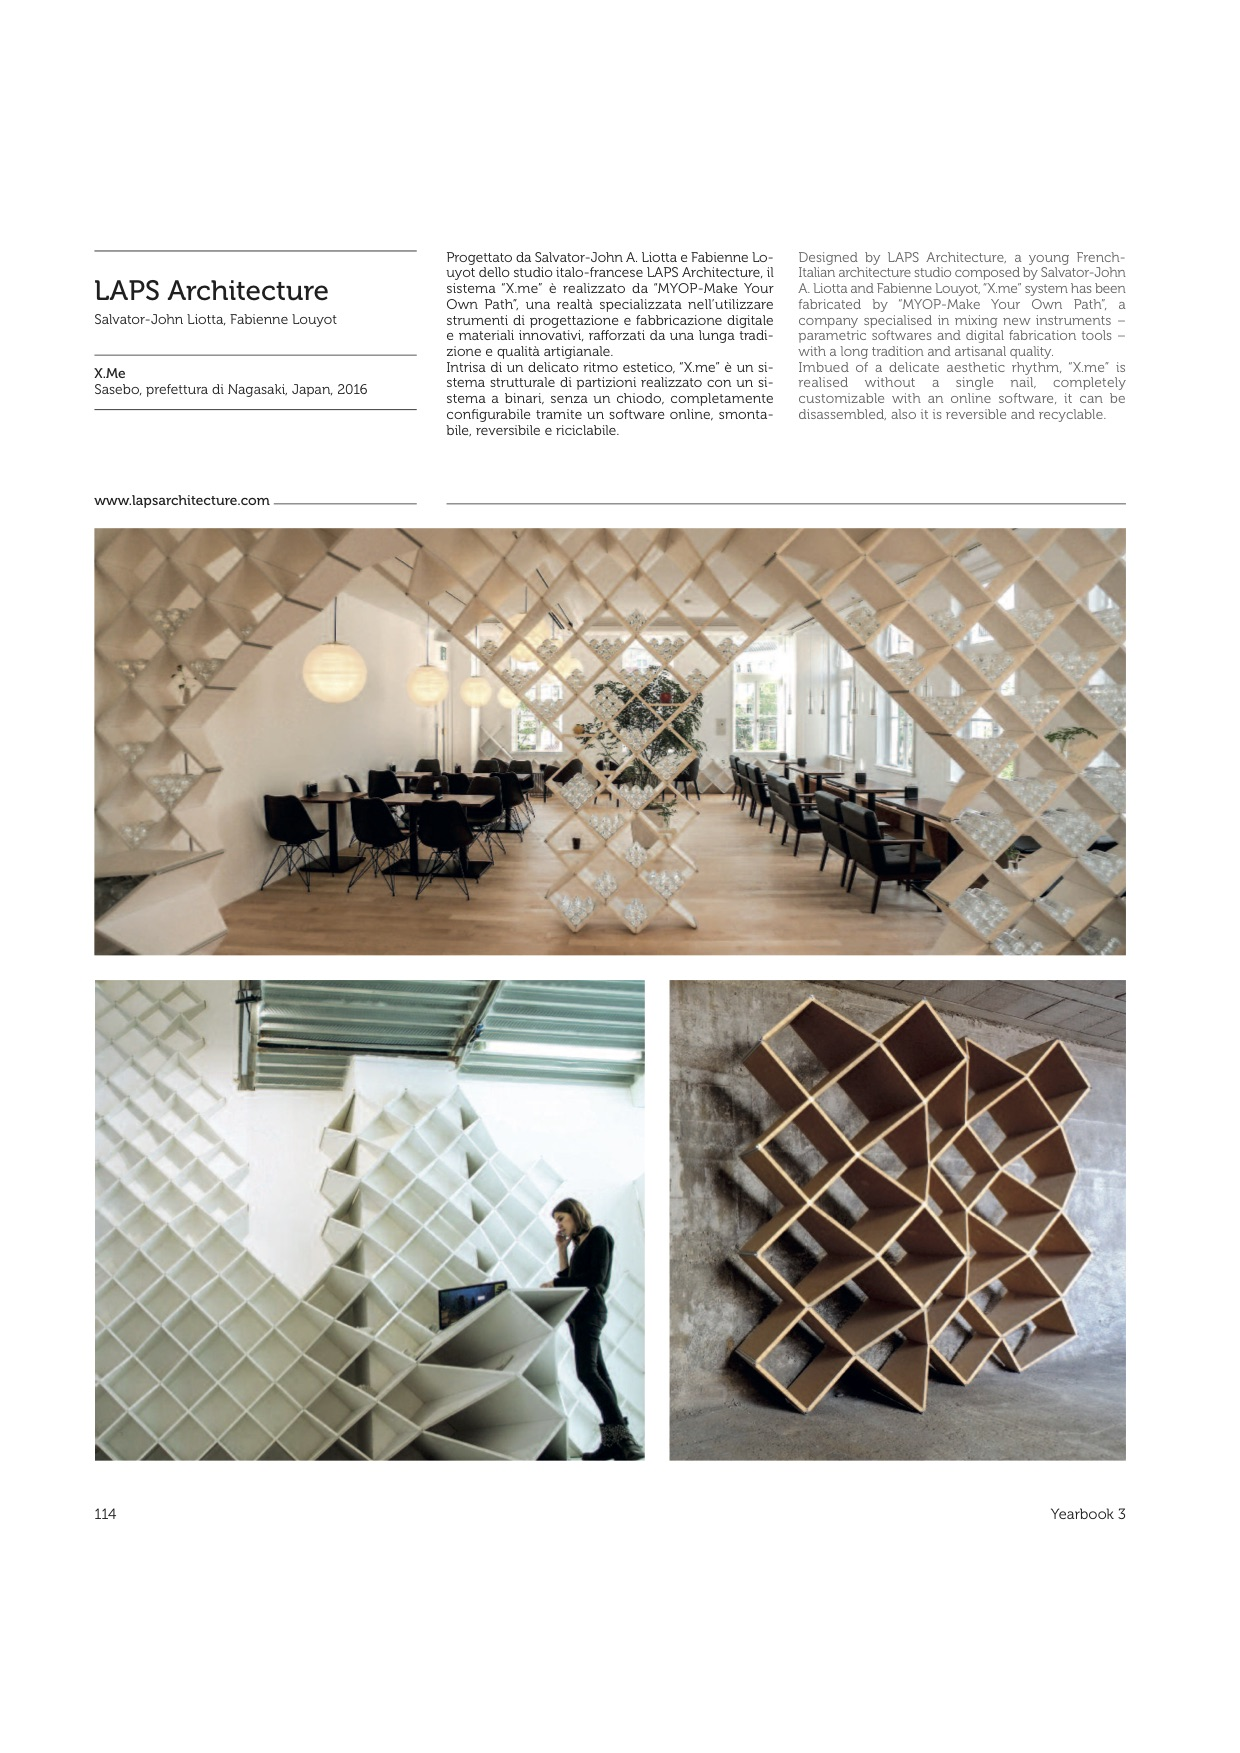 liotta Yearbook3_2019_06_Opere di Design 2_arancio.jpg